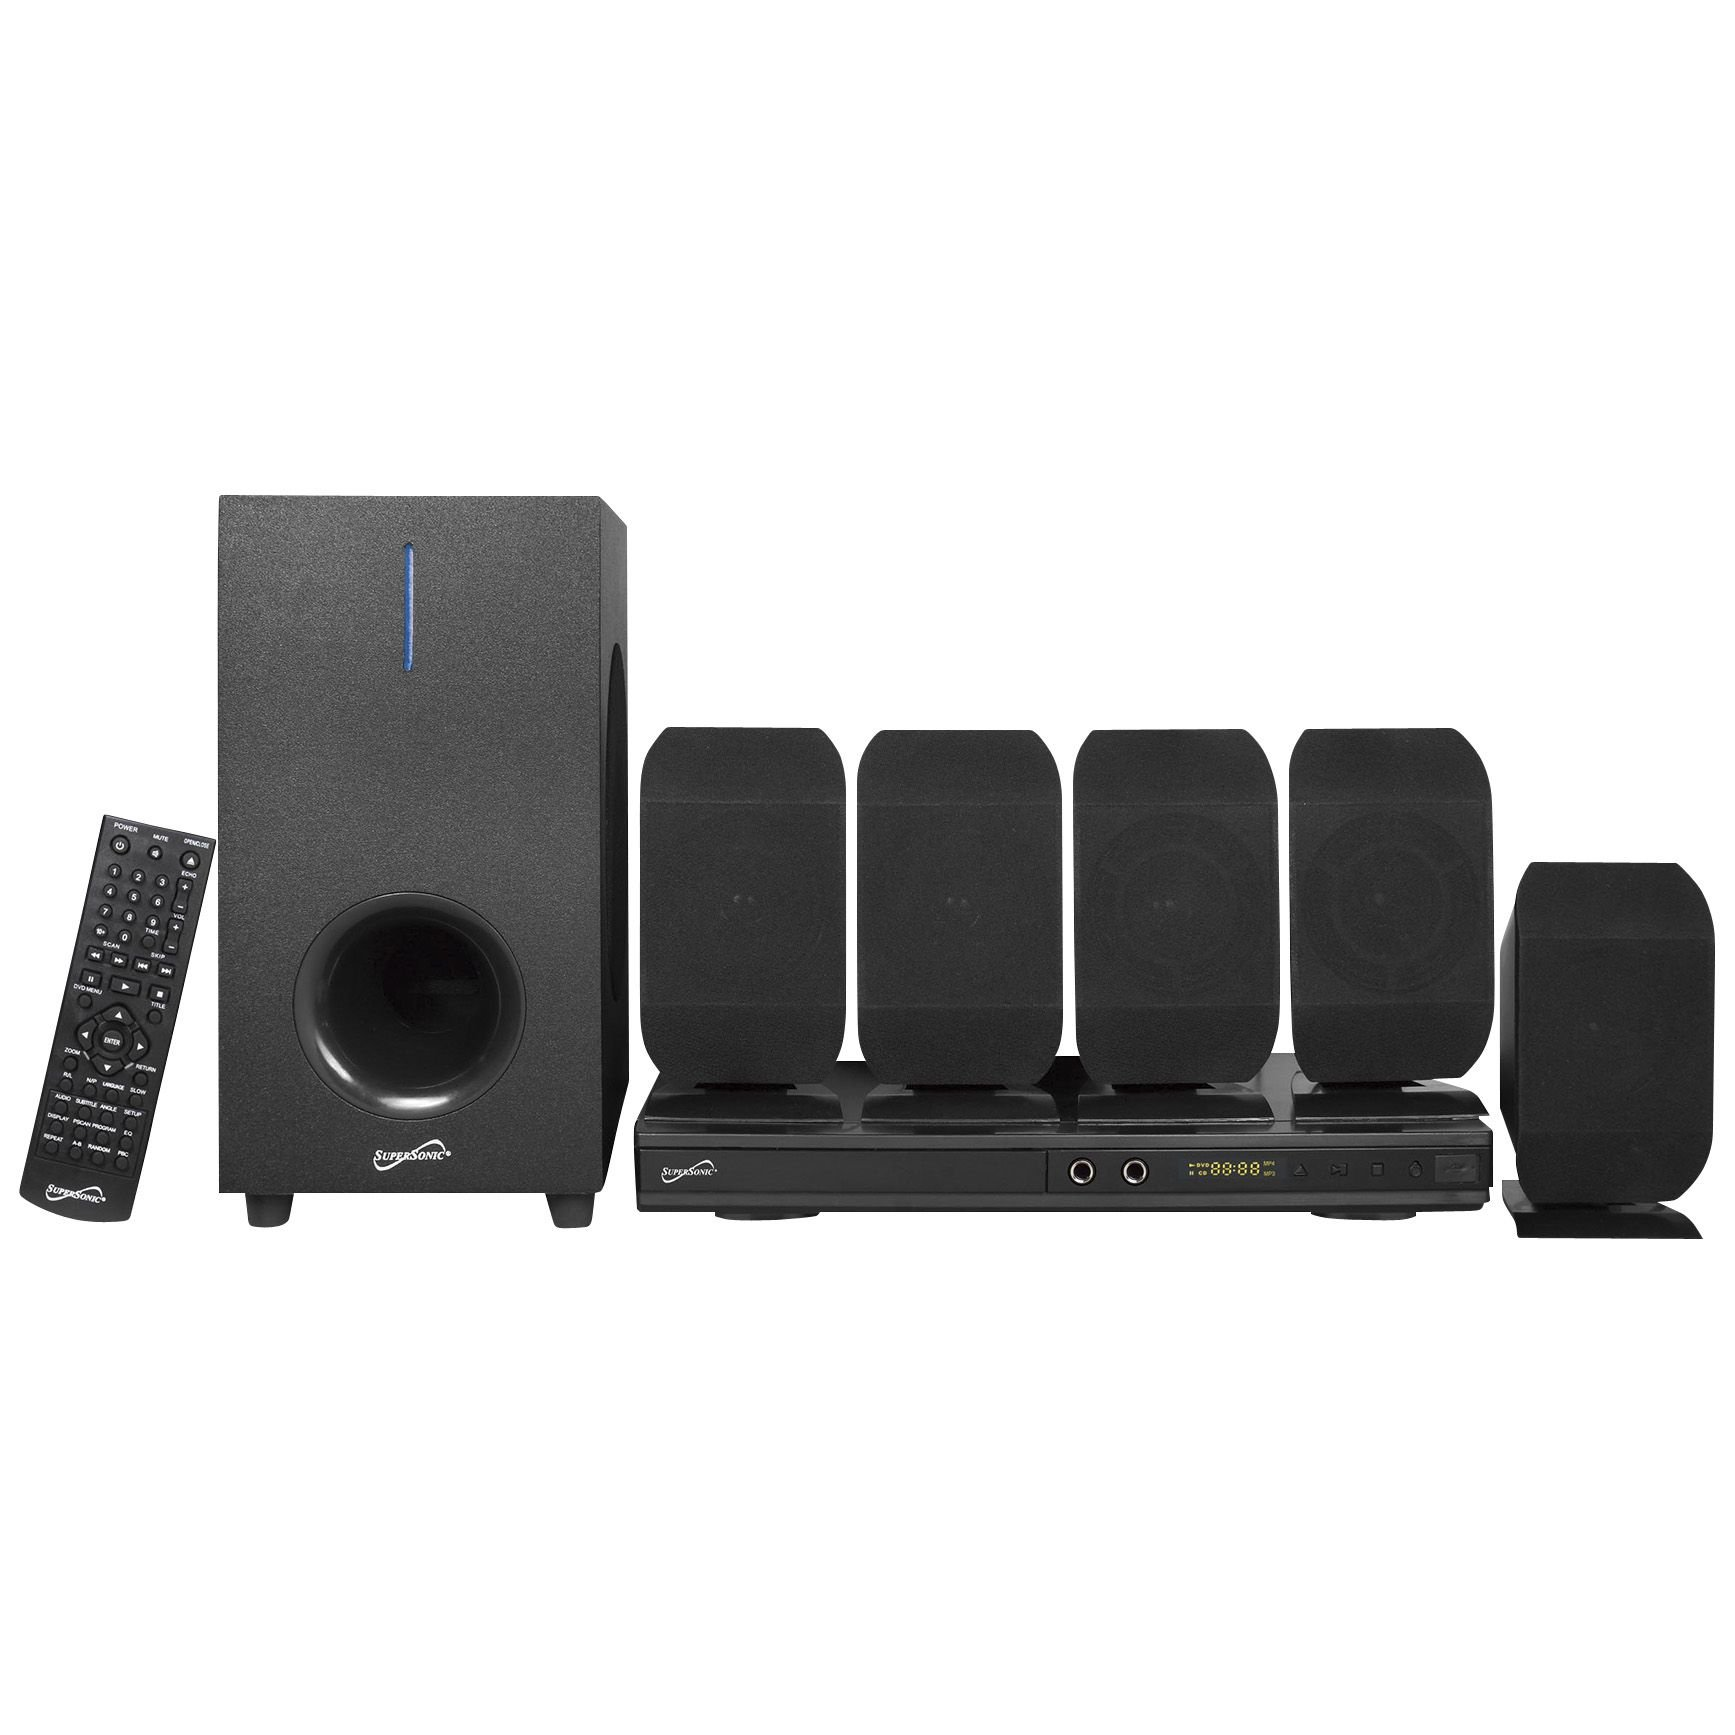 Supersonic SC-38HT 5.1 Channel DVD Home Theater System with Karaoke Function